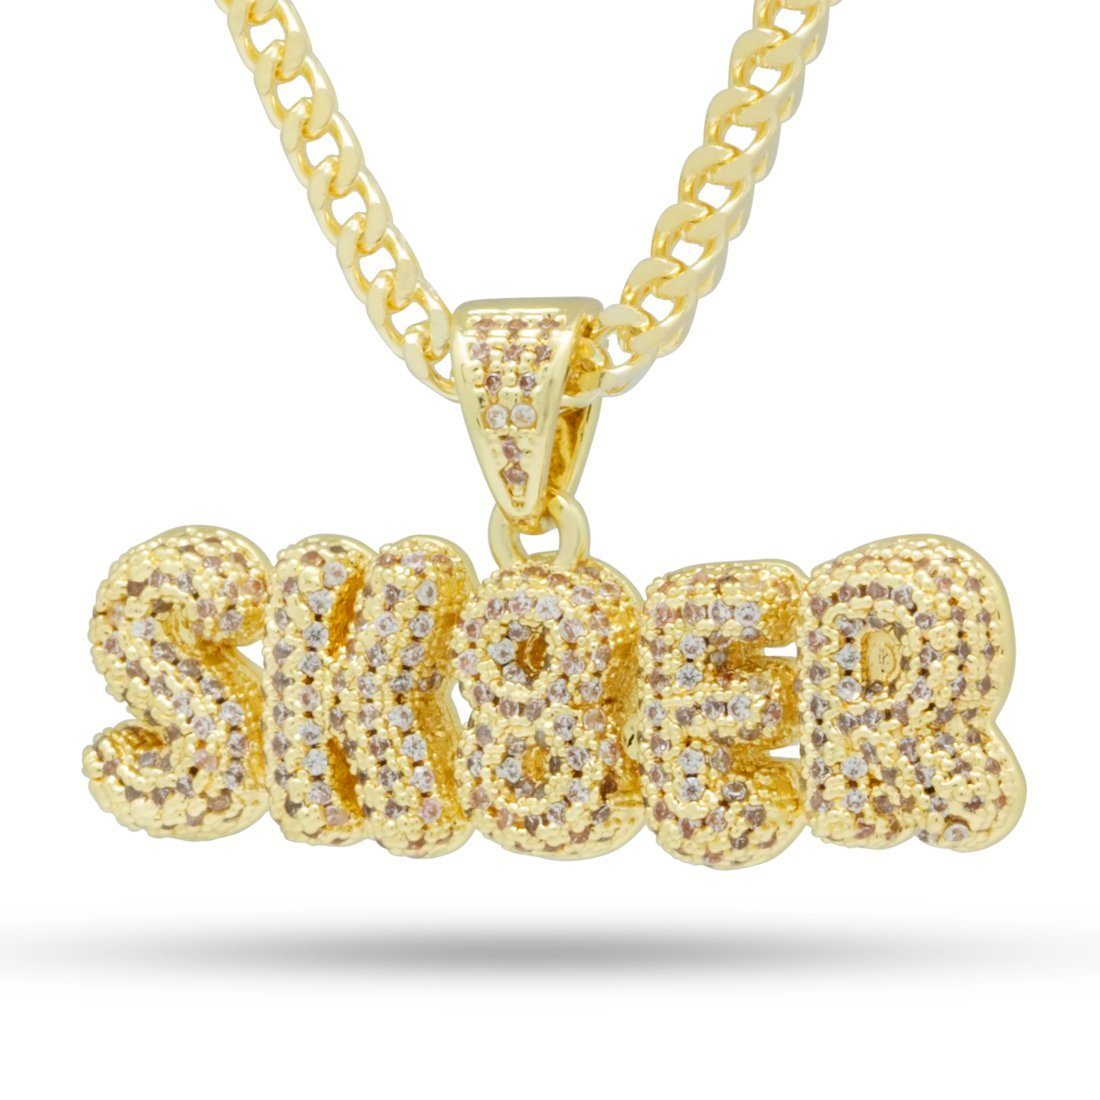 Image of The SK8ER Necklace